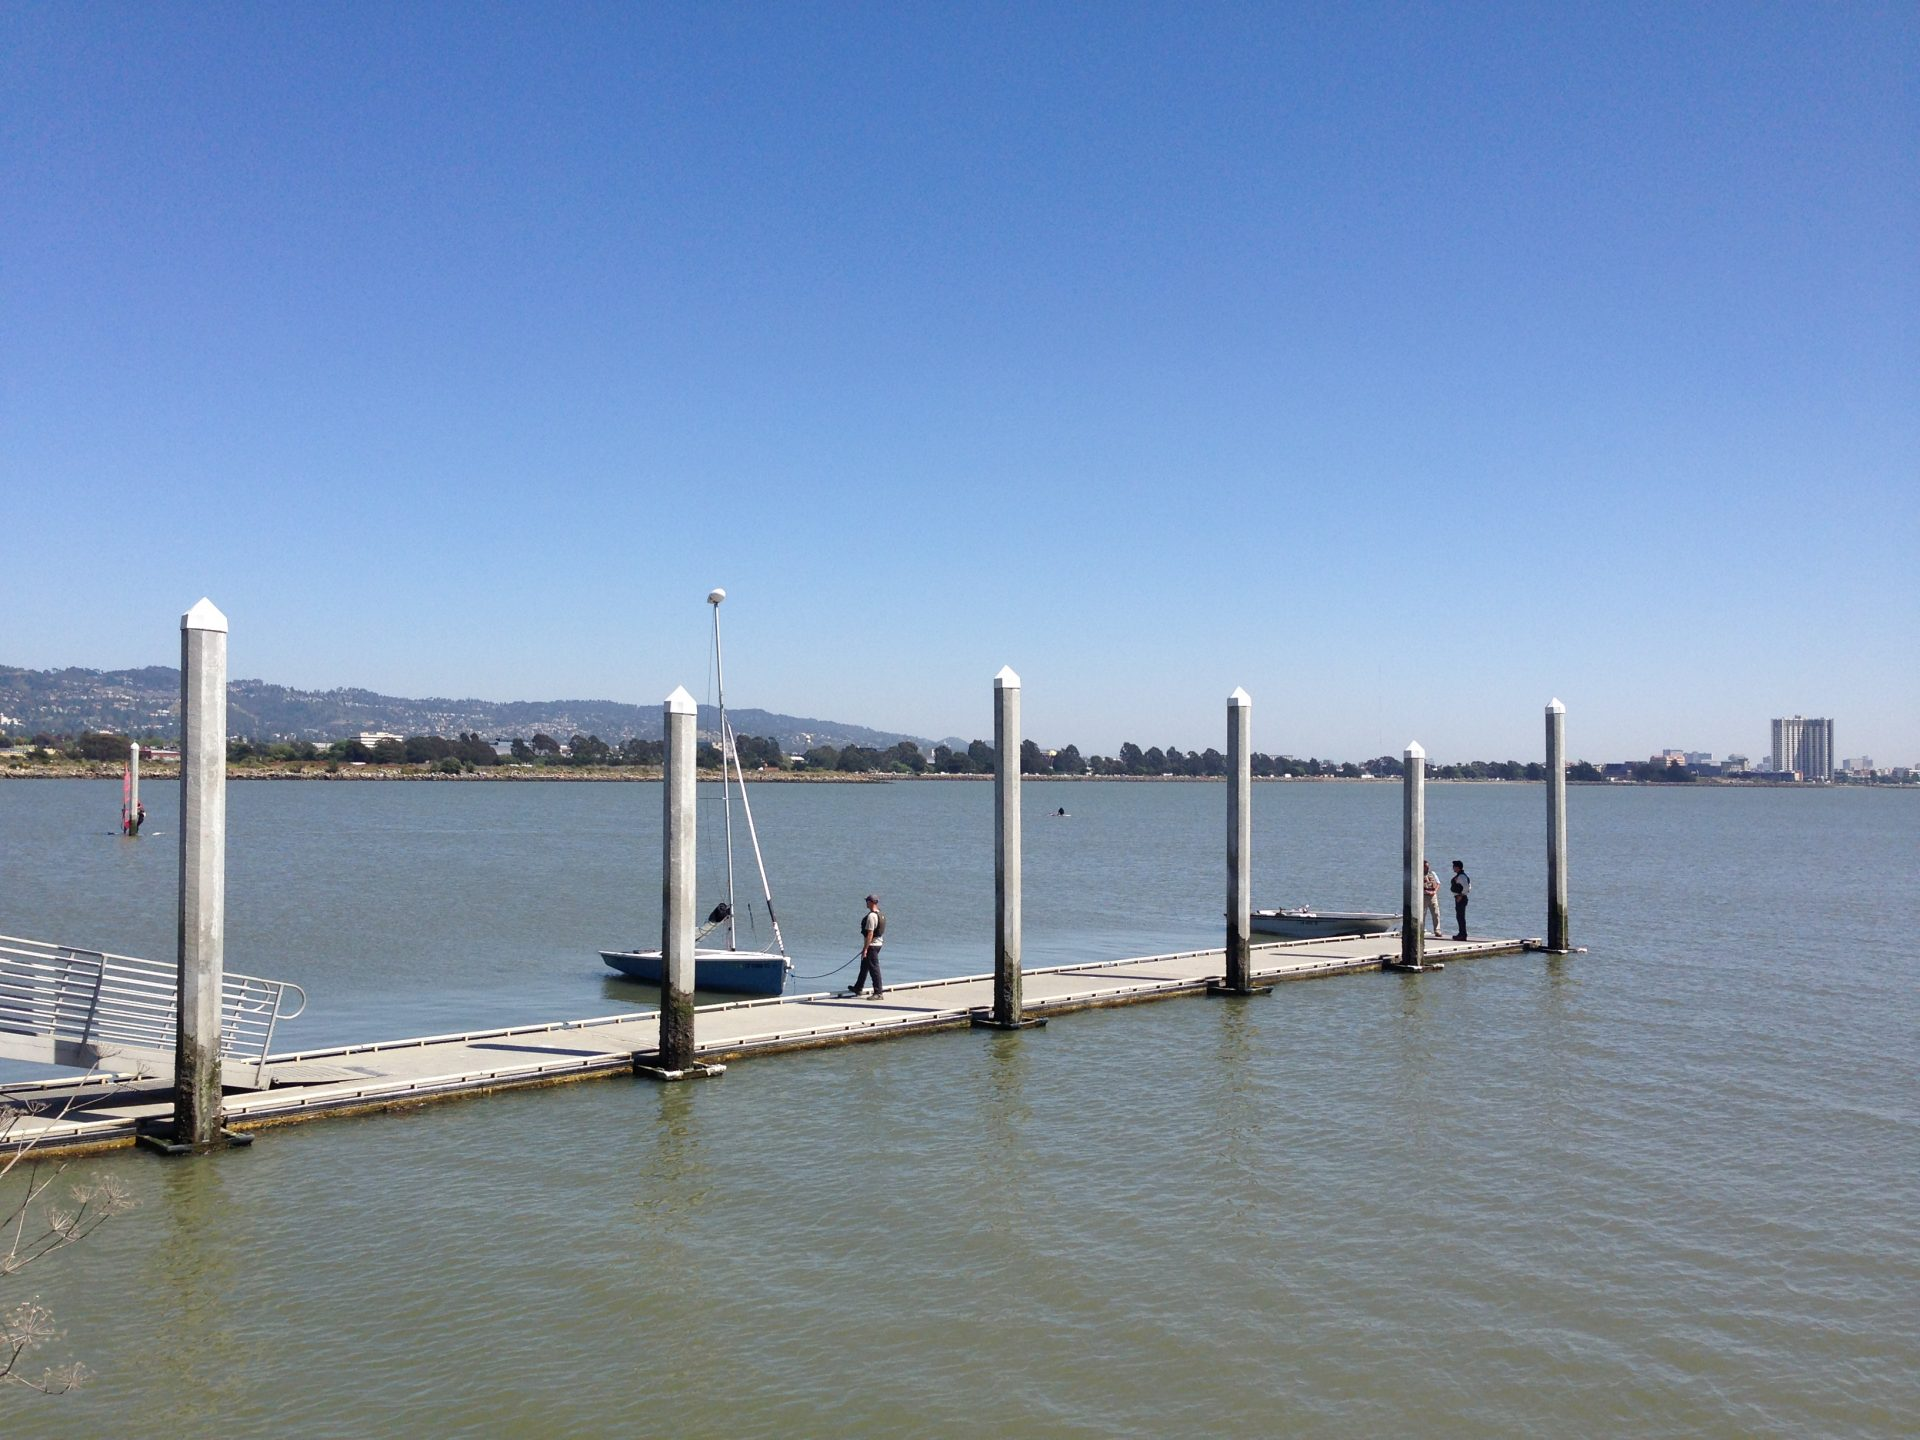 Person mooring small sailboat on flat floating dock